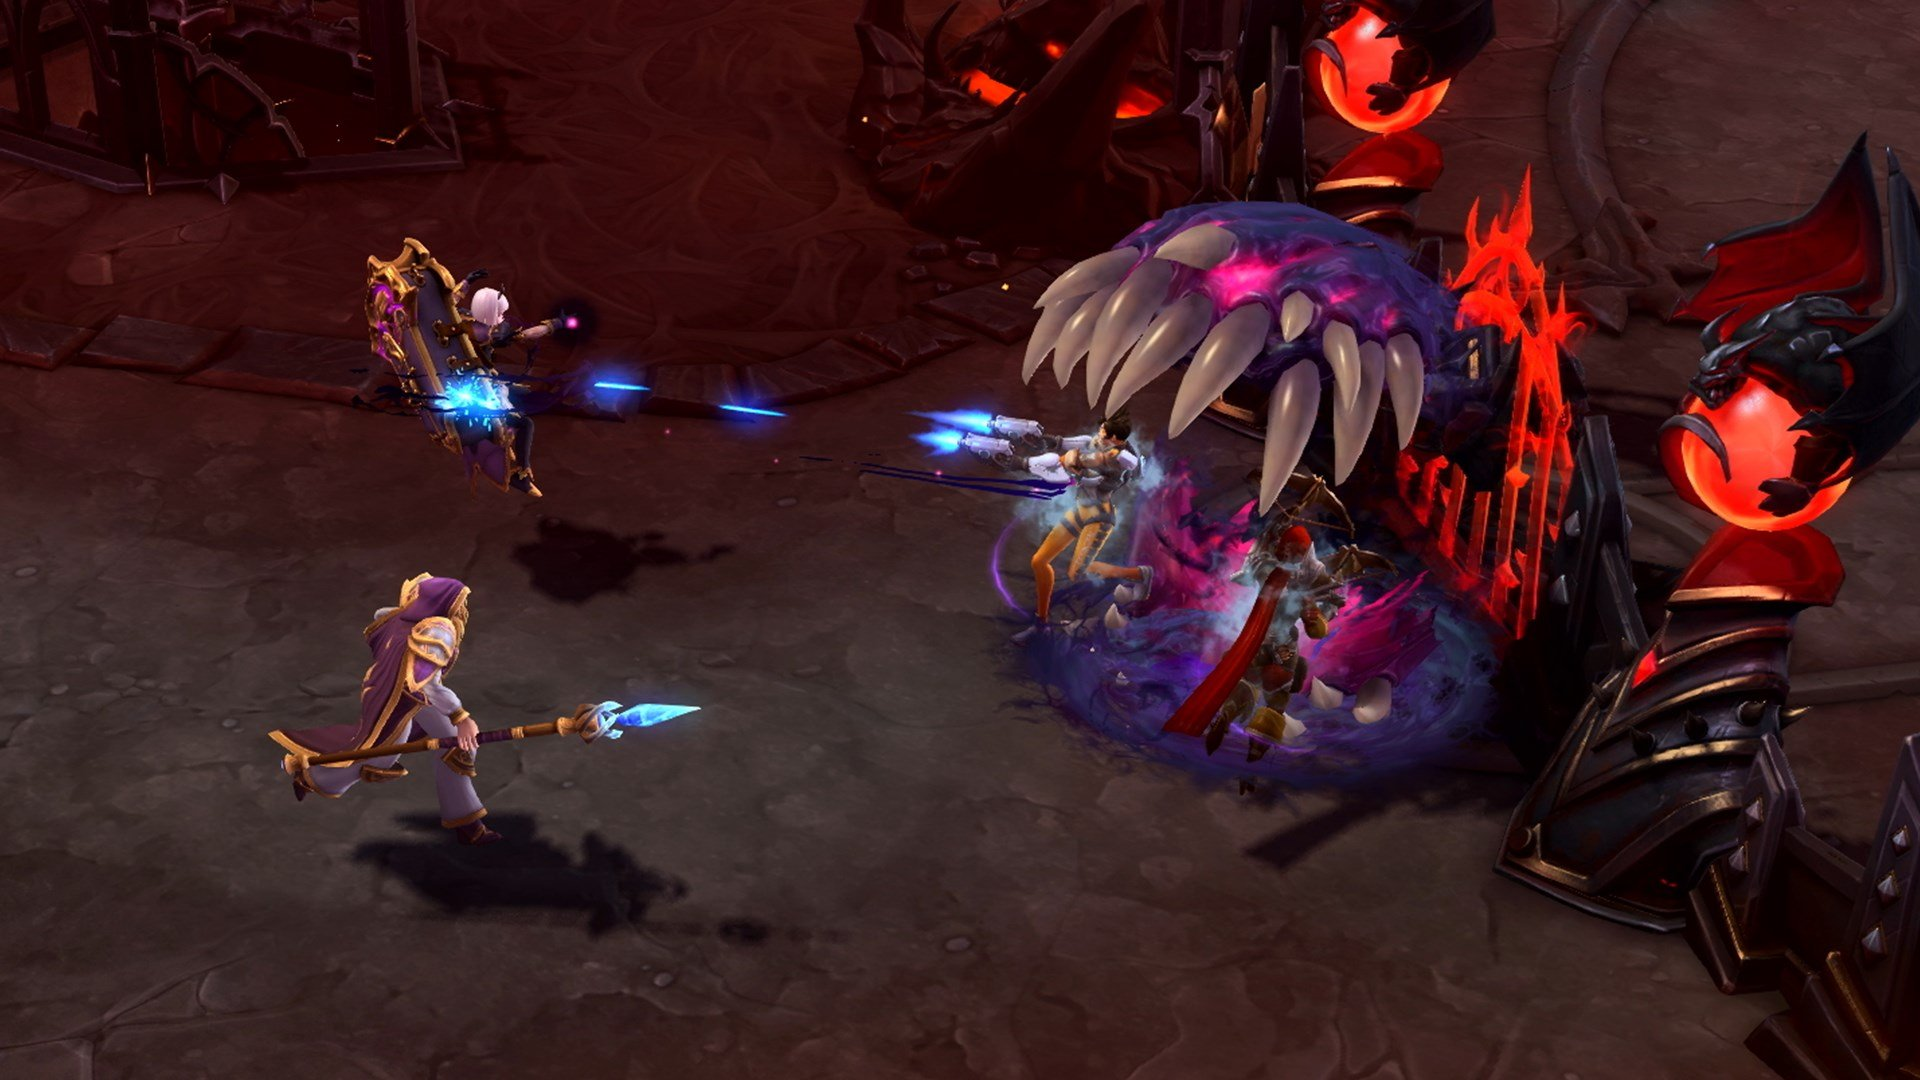 Heroes of the storm blizzcon interview discusses orphea - Heroes of the storm space lord leoric ...